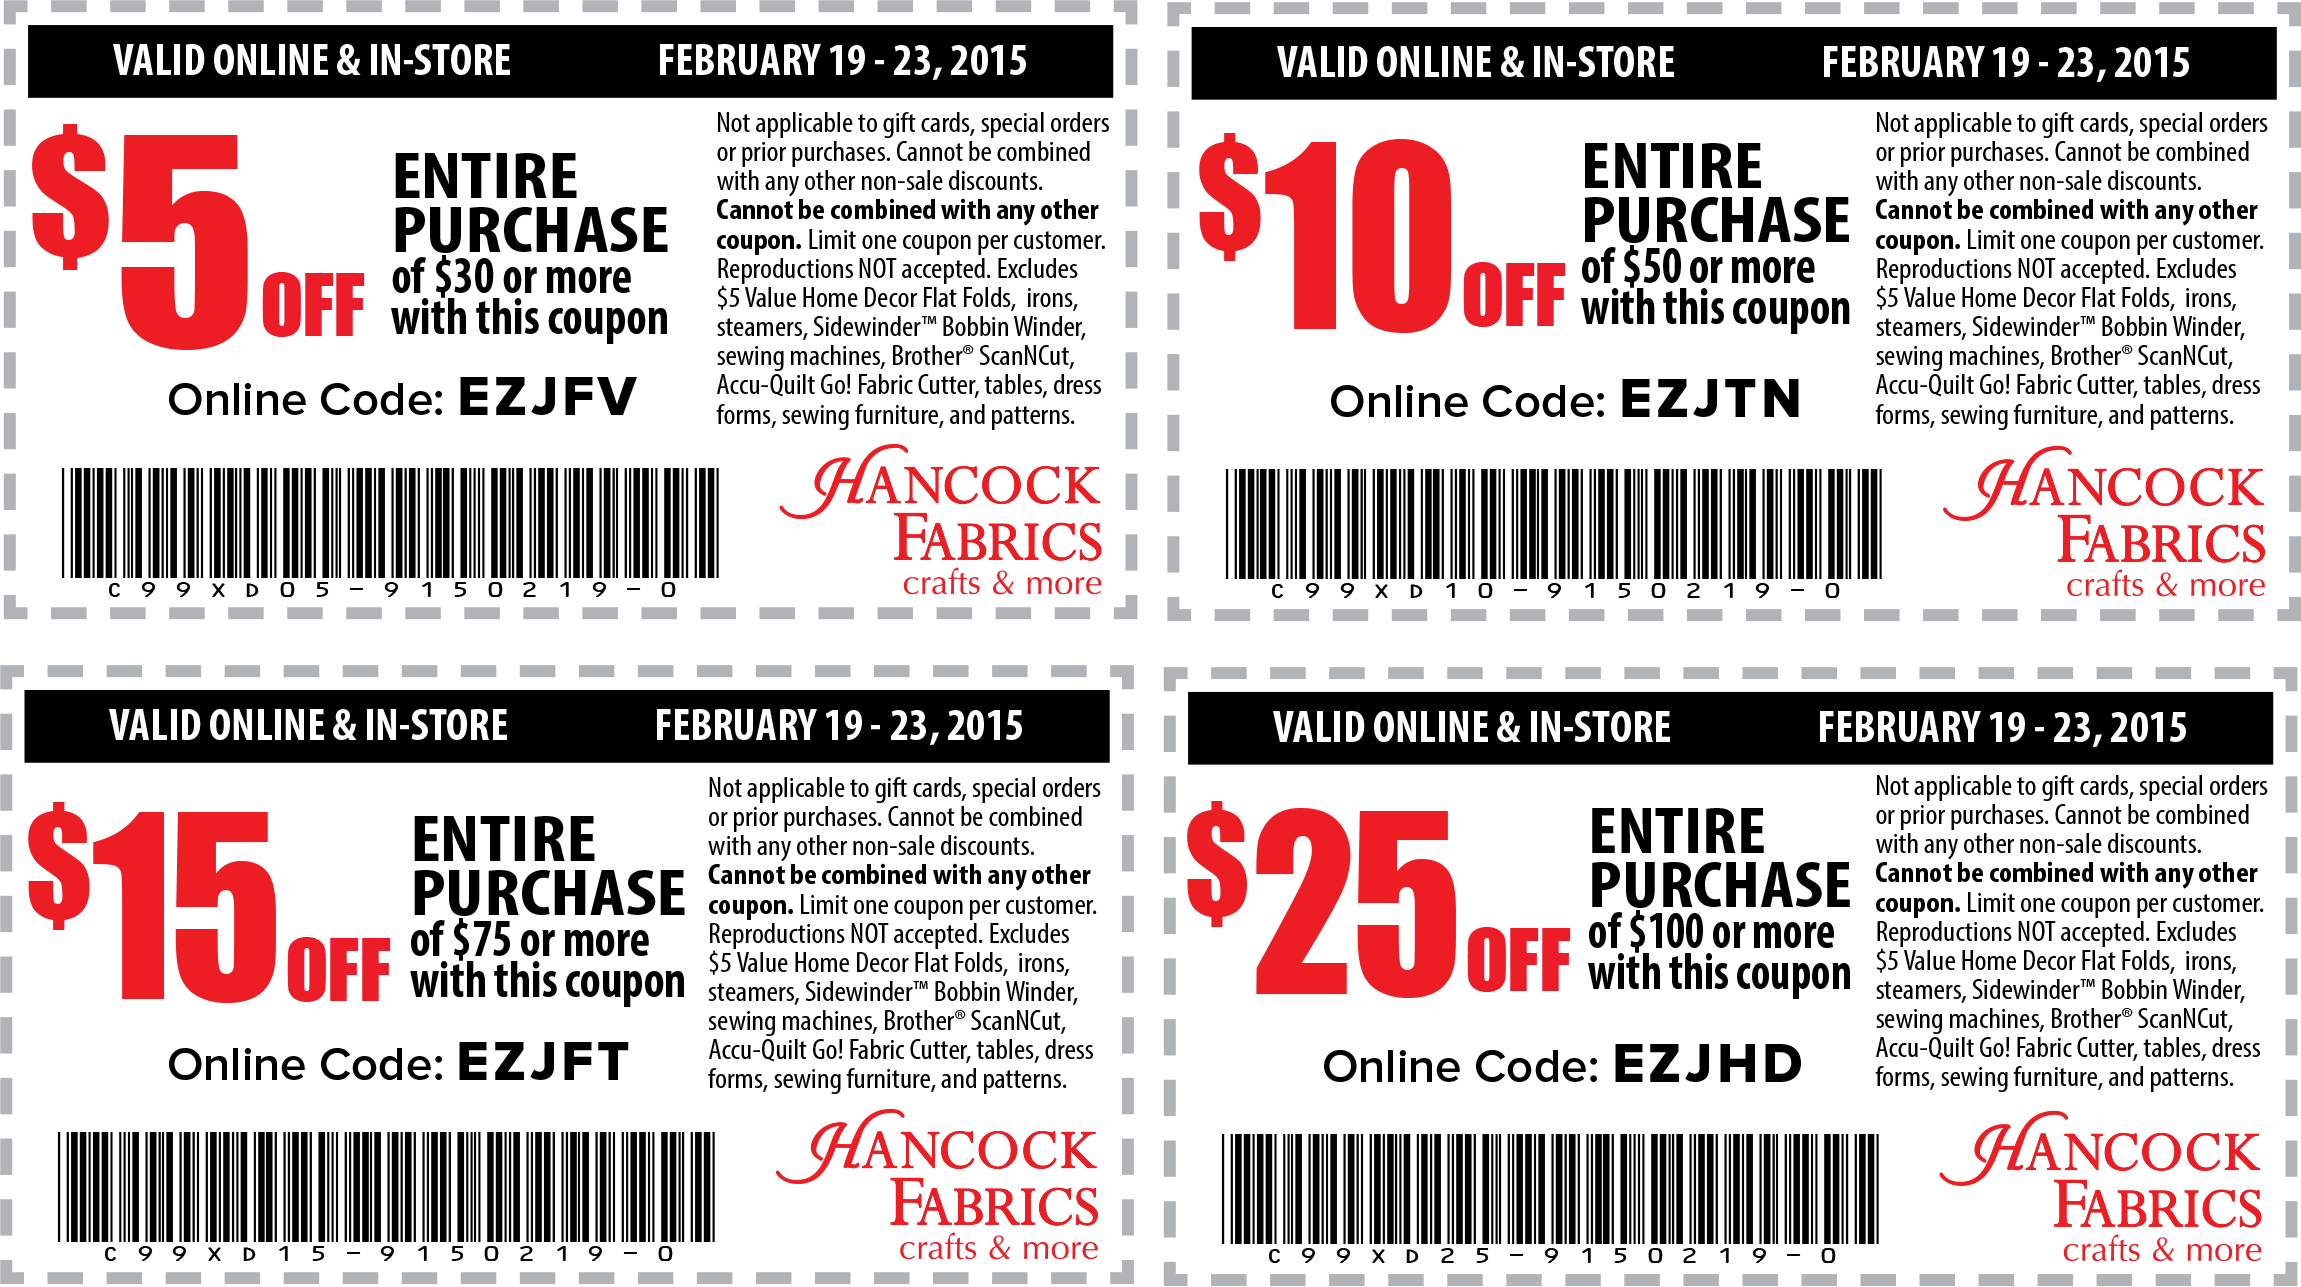 Fabric.com coupon codes